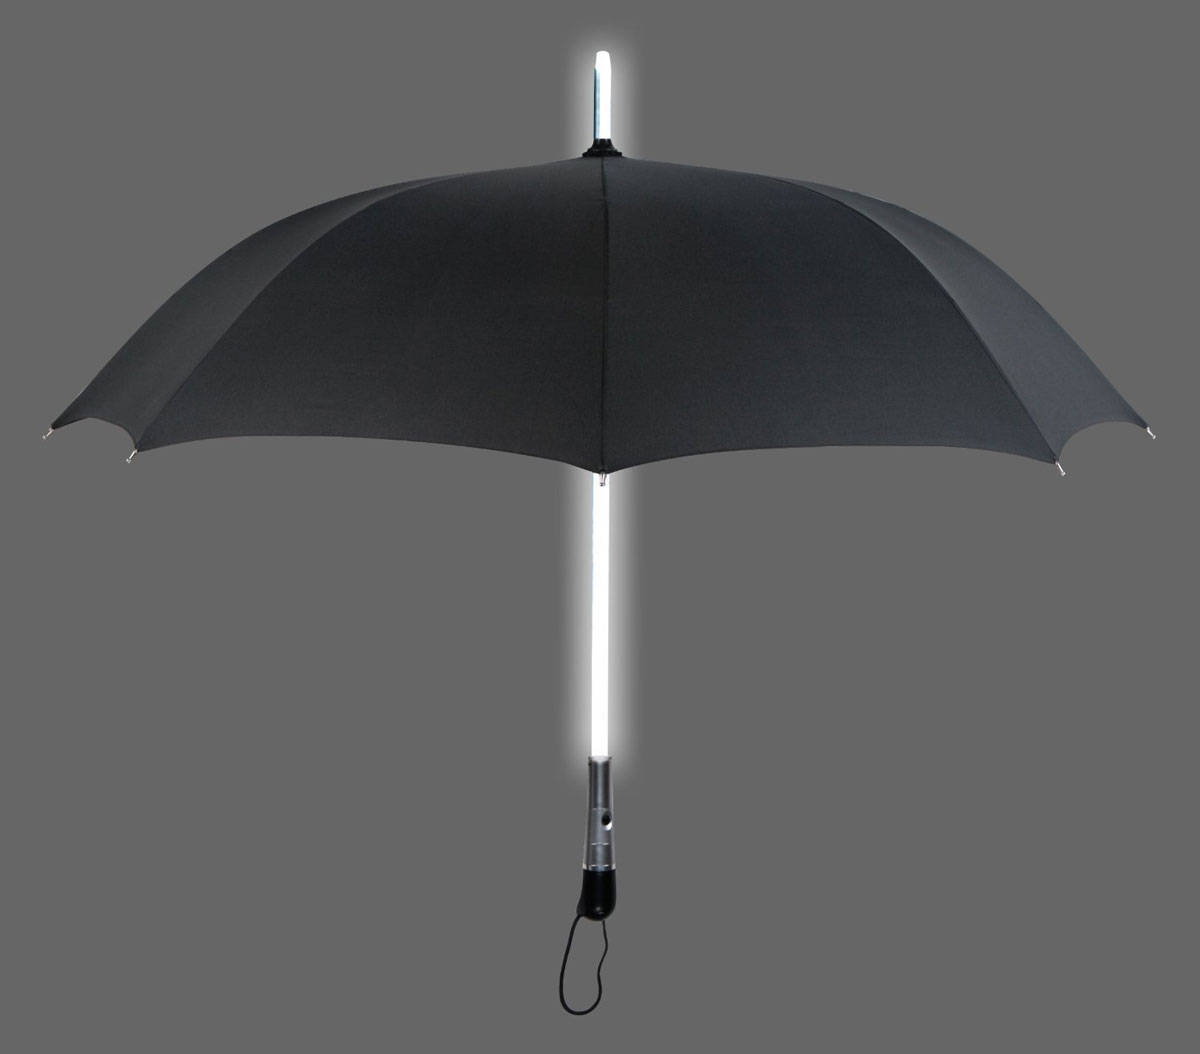 Led Umbrella Amazon: LED Lightsaber Flashlight Umbrella